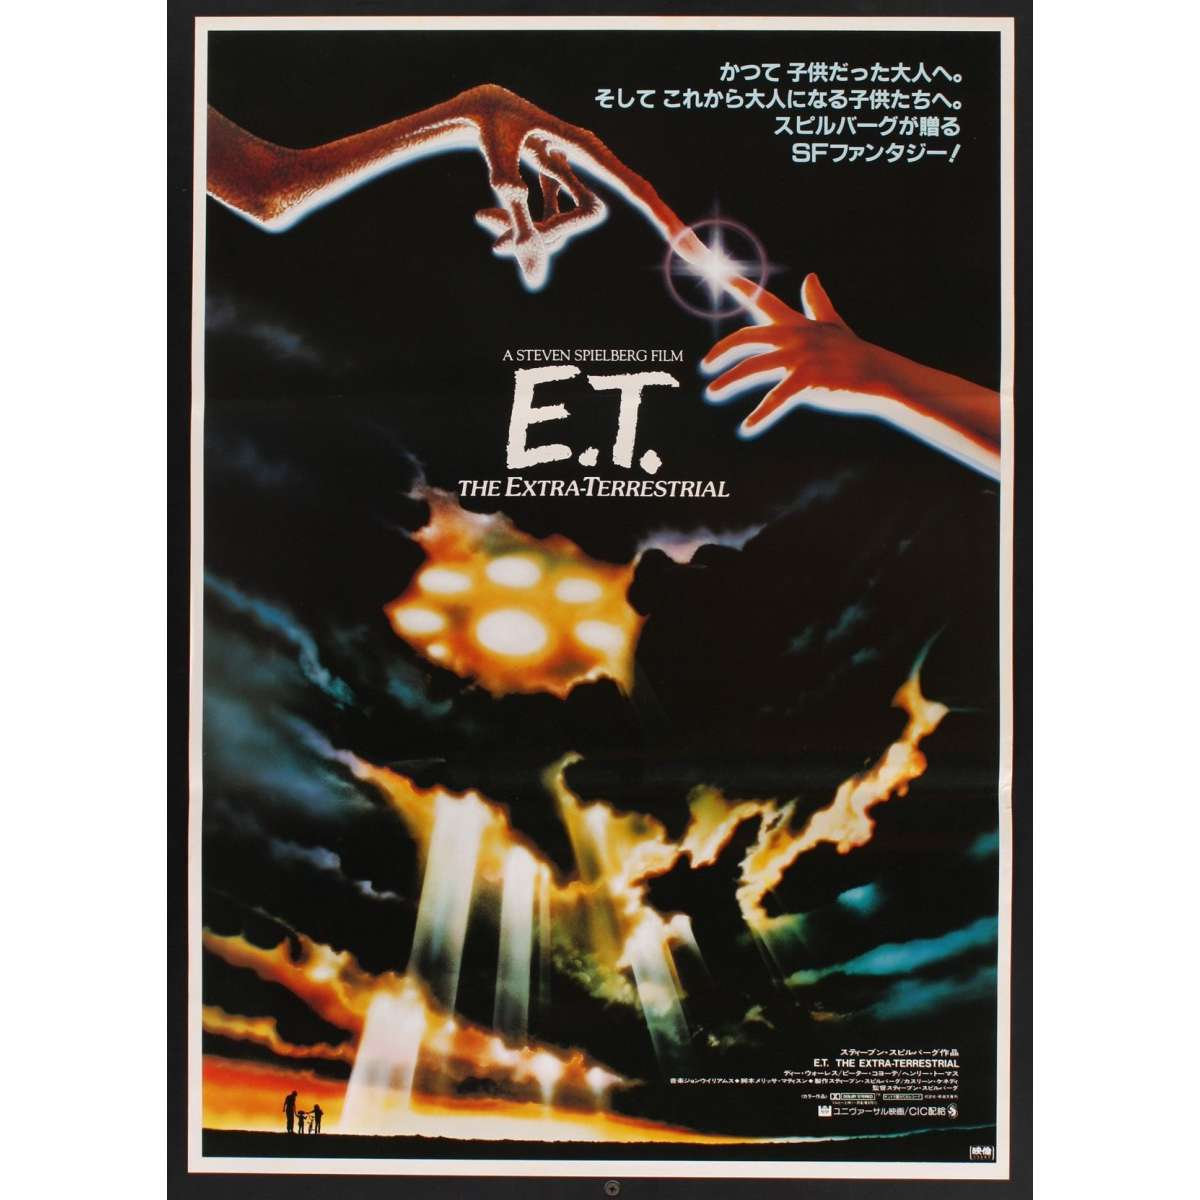 e t vintage japanese movie poster 39 82 steven spielberg at mauvais genres com